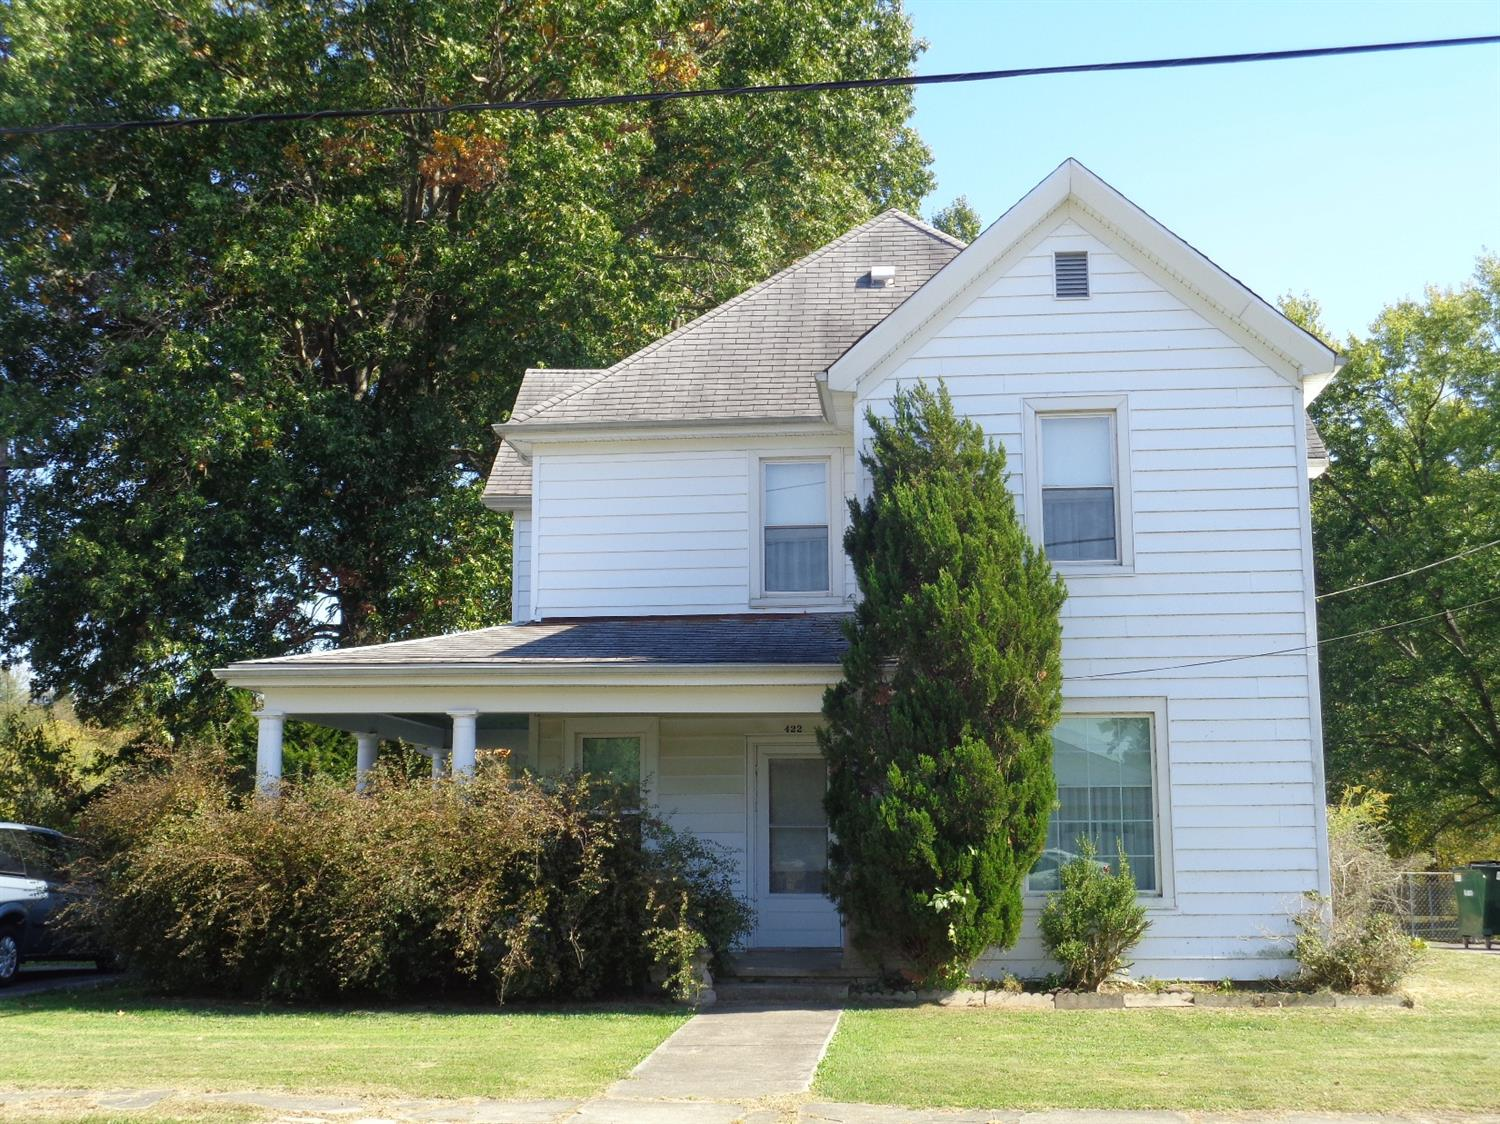 real estate photo 1 for 422 Beech St Falmouth, KY 41040